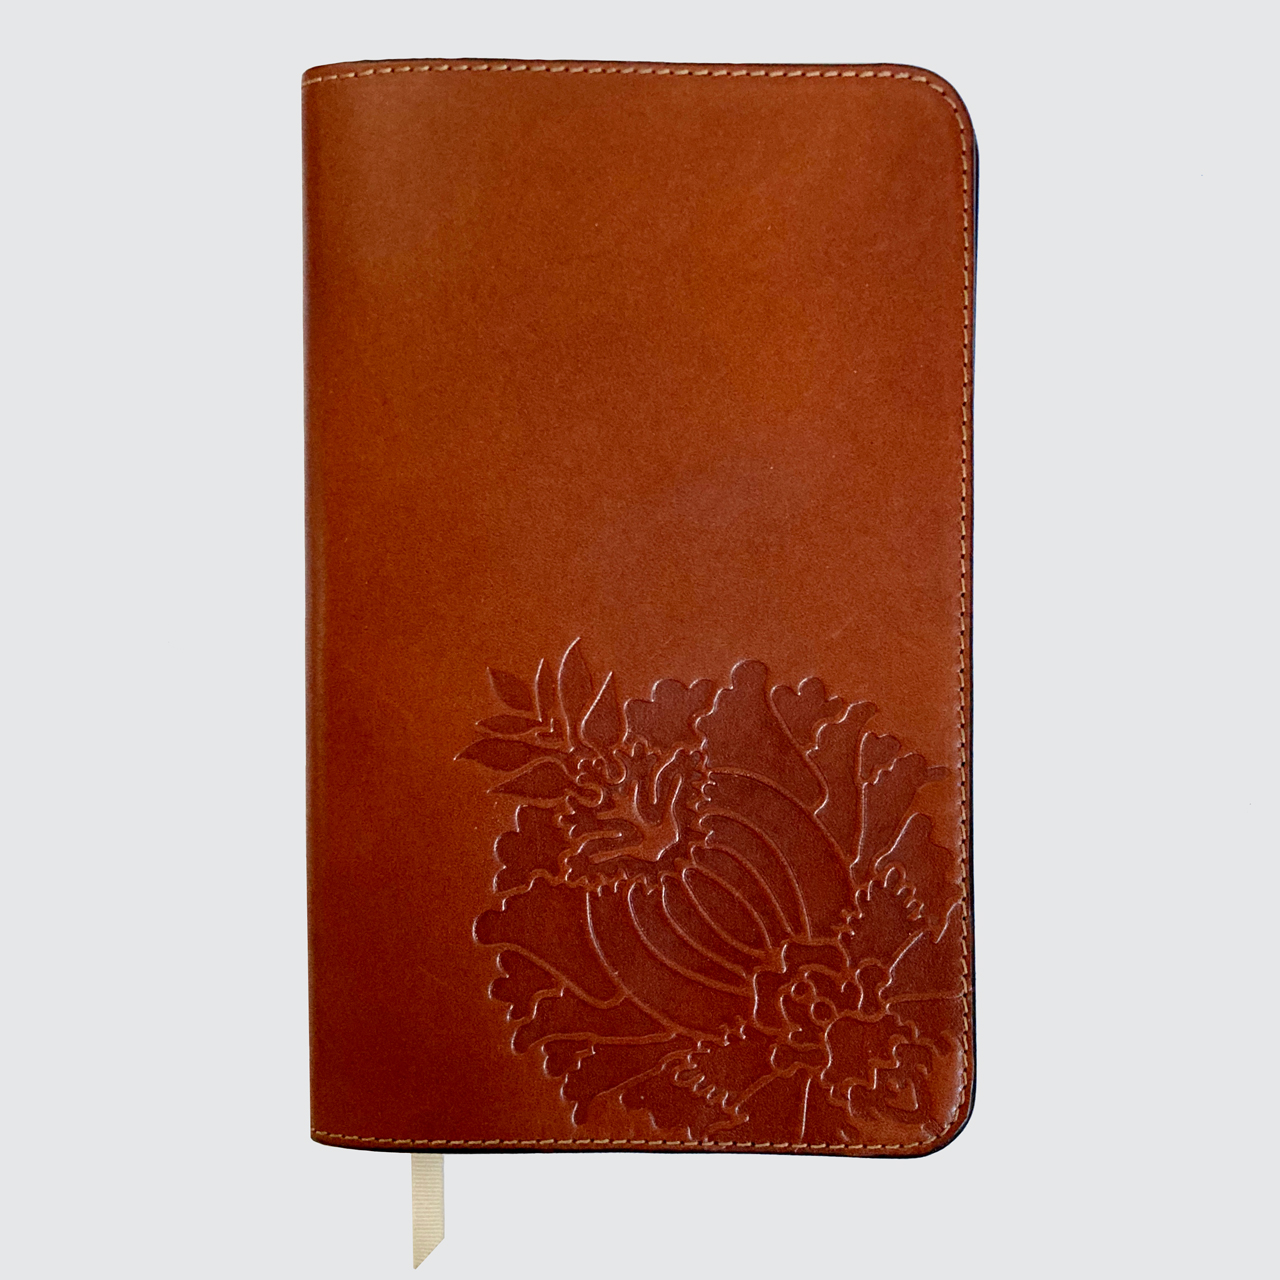 Rose, Long, Accessories, Long Studio Design, tan, notebook covers, leather, embossed, floral, uk,